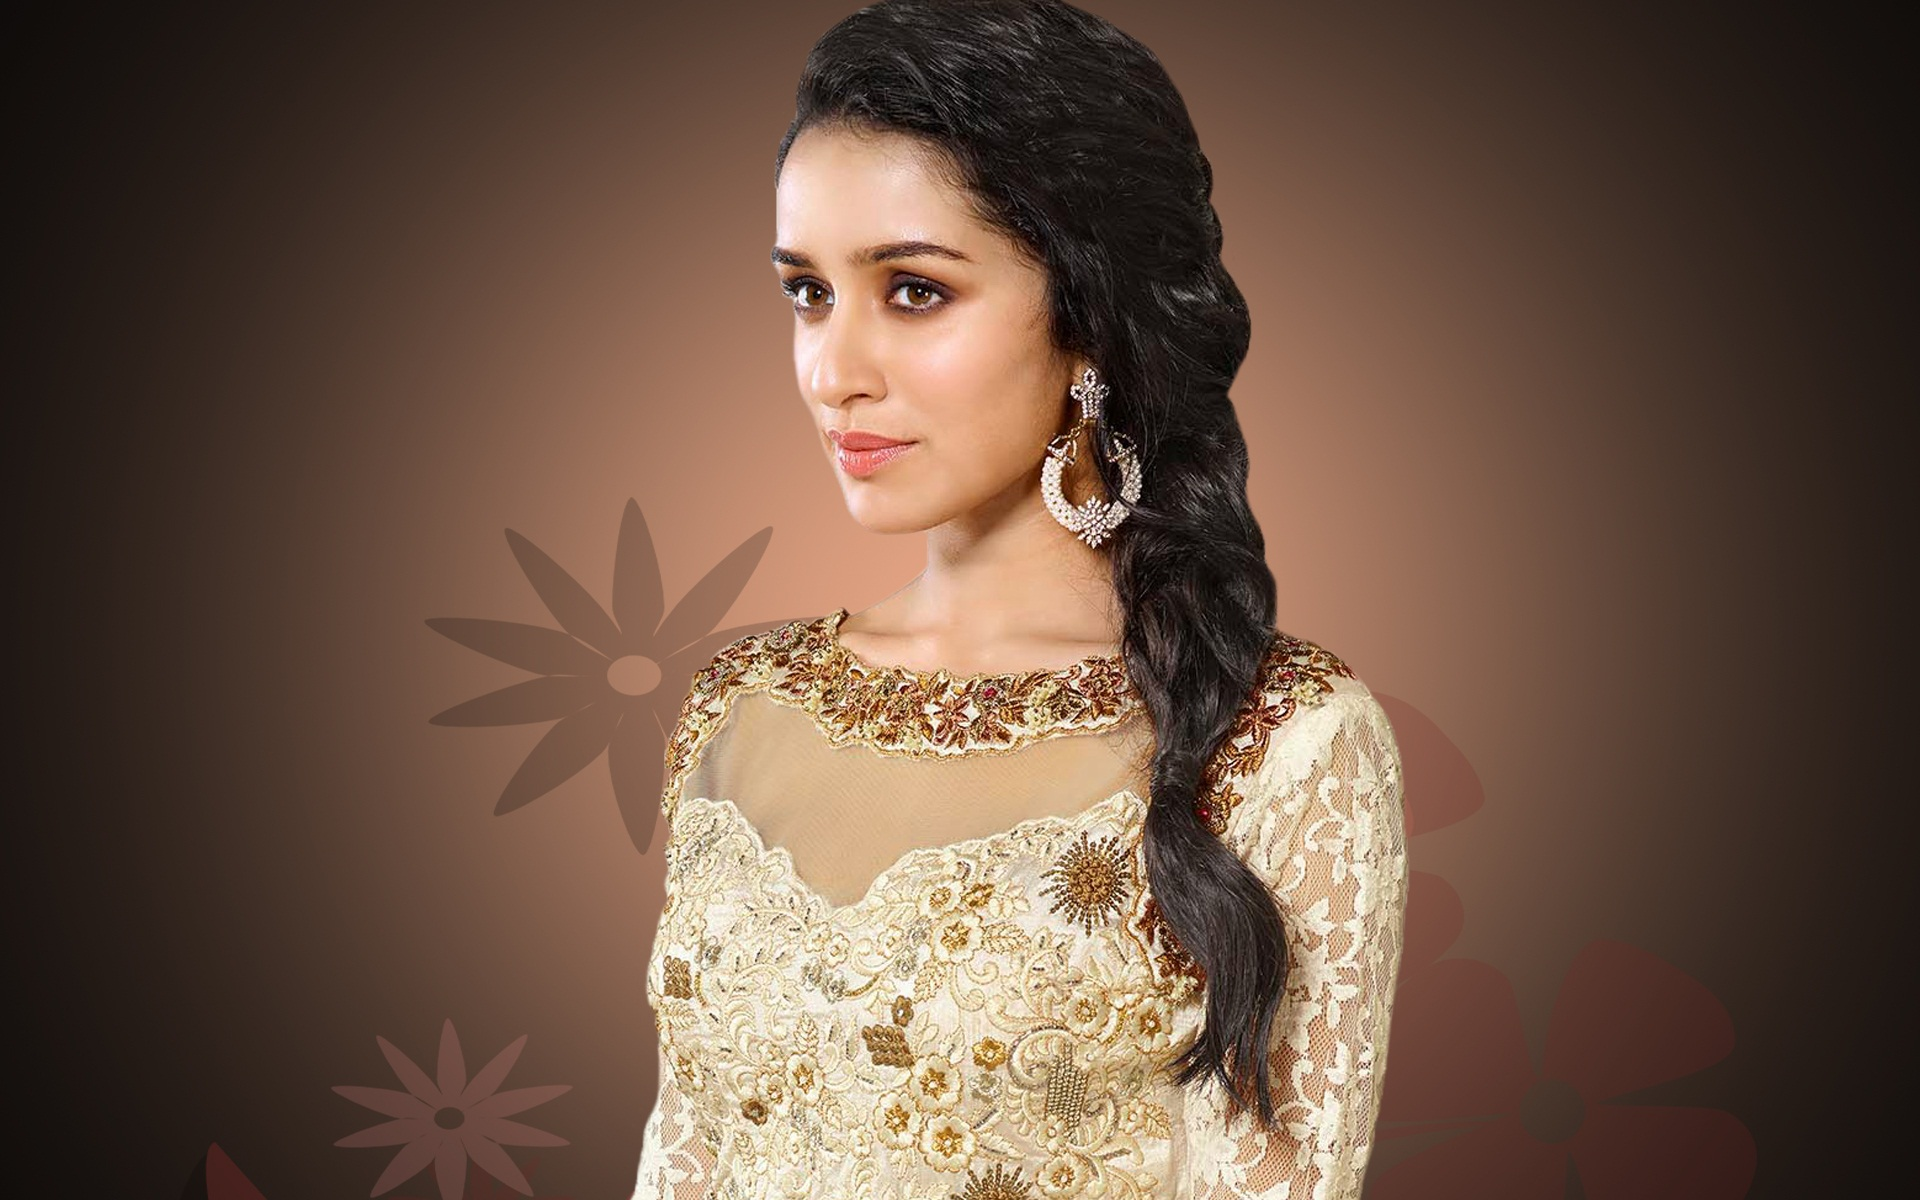 Shraddha Kapoor Wallpapers HD Backgrounds Images Pics Photos 1920x1200